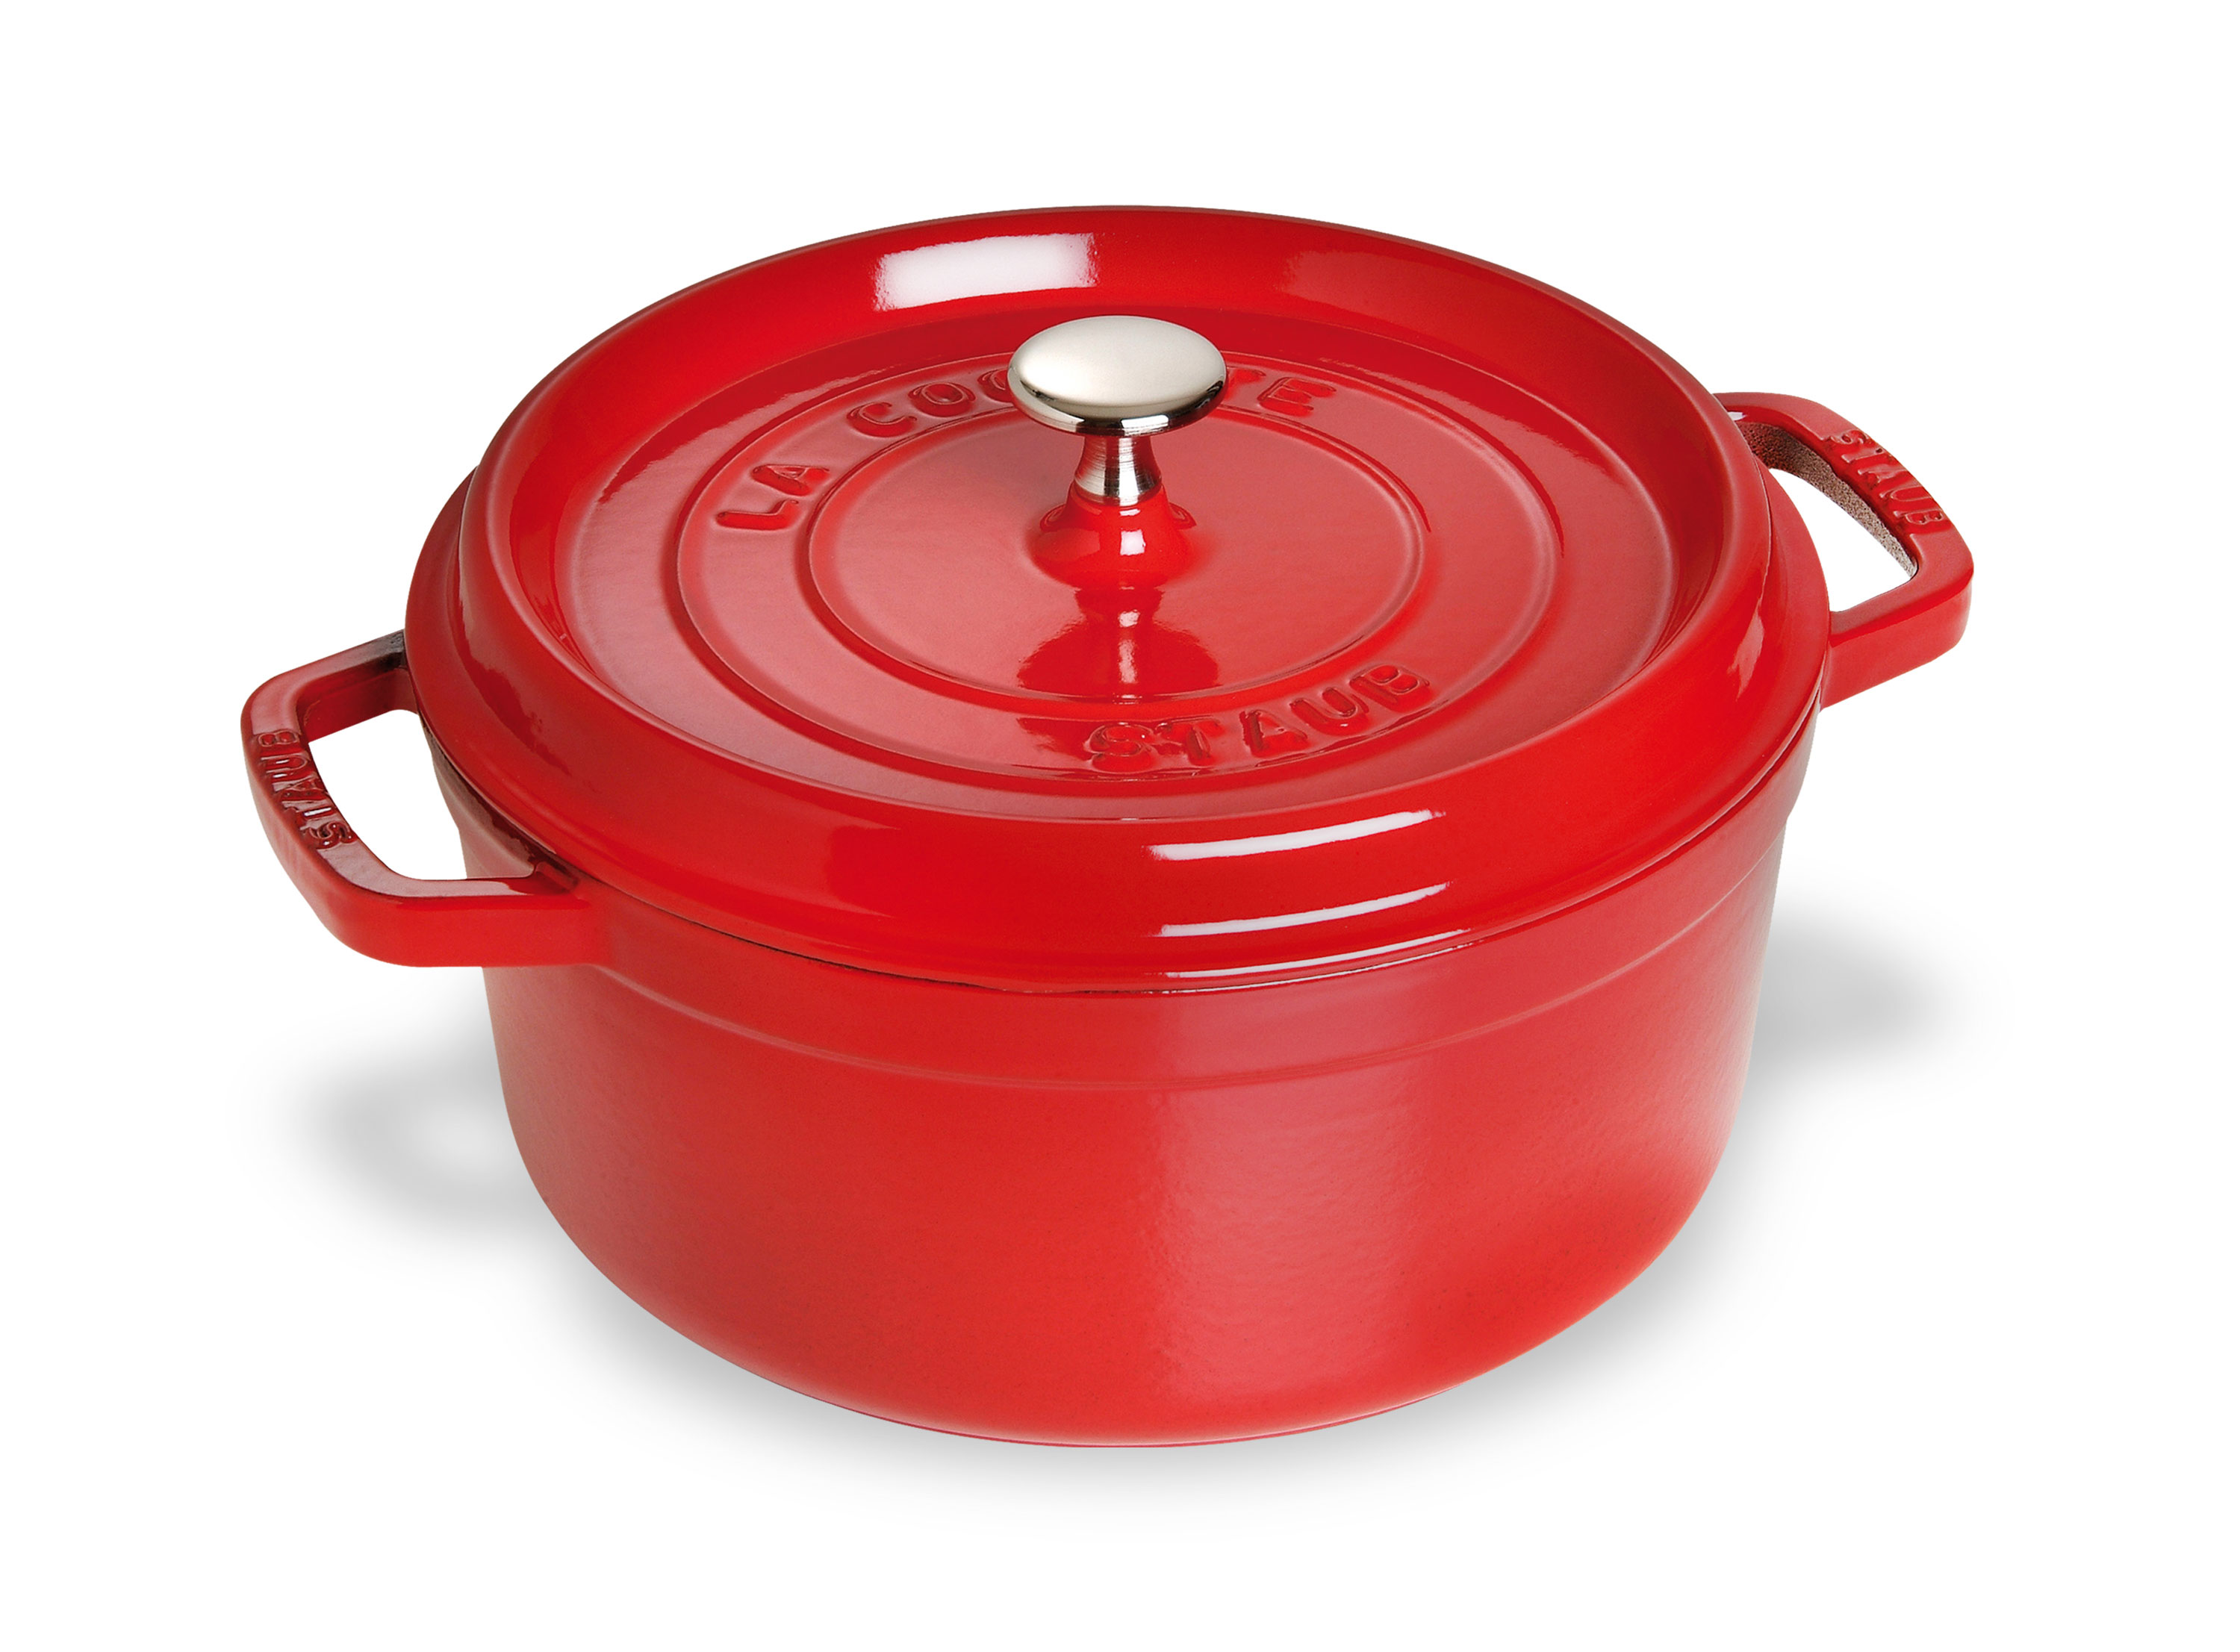 staub cast iron cocotte 4 quart cherry red dutch oven cookware cutlery and more. Black Bedroom Furniture Sets. Home Design Ideas